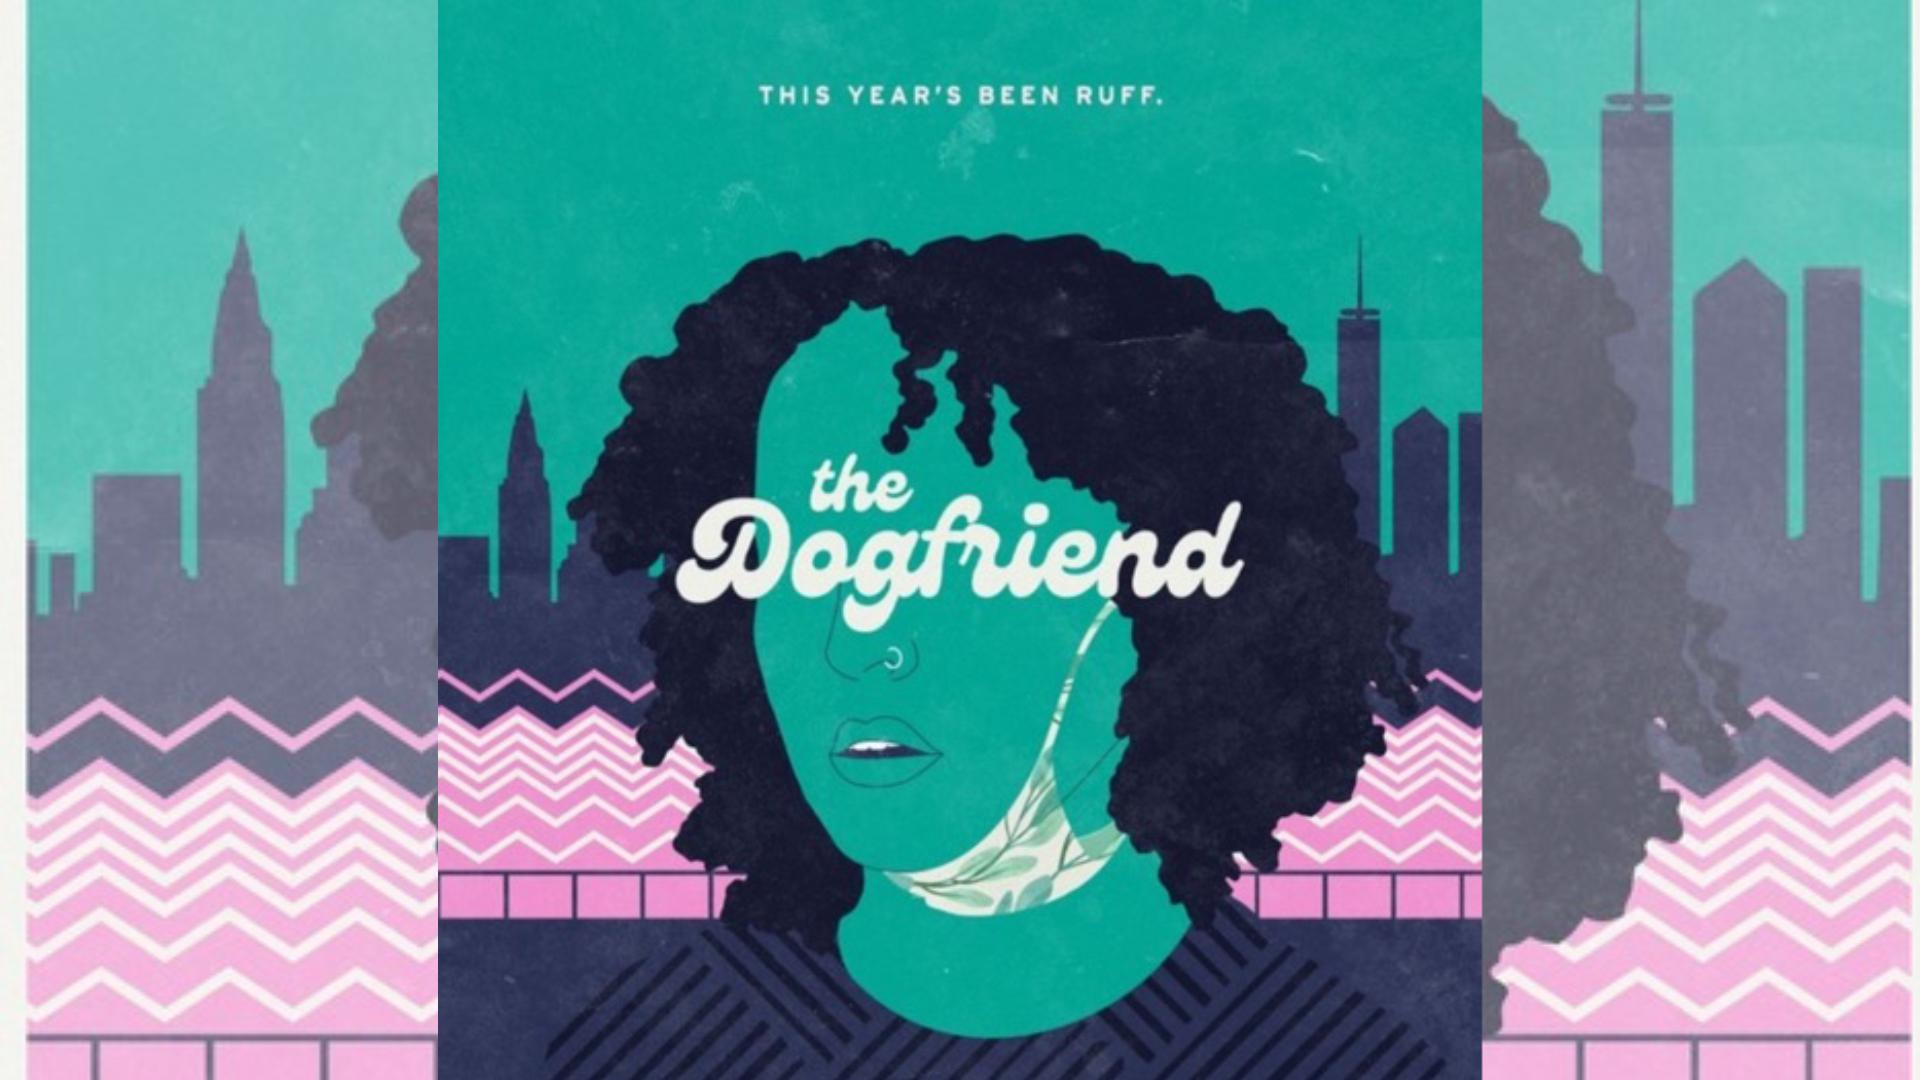 The Dogfriend